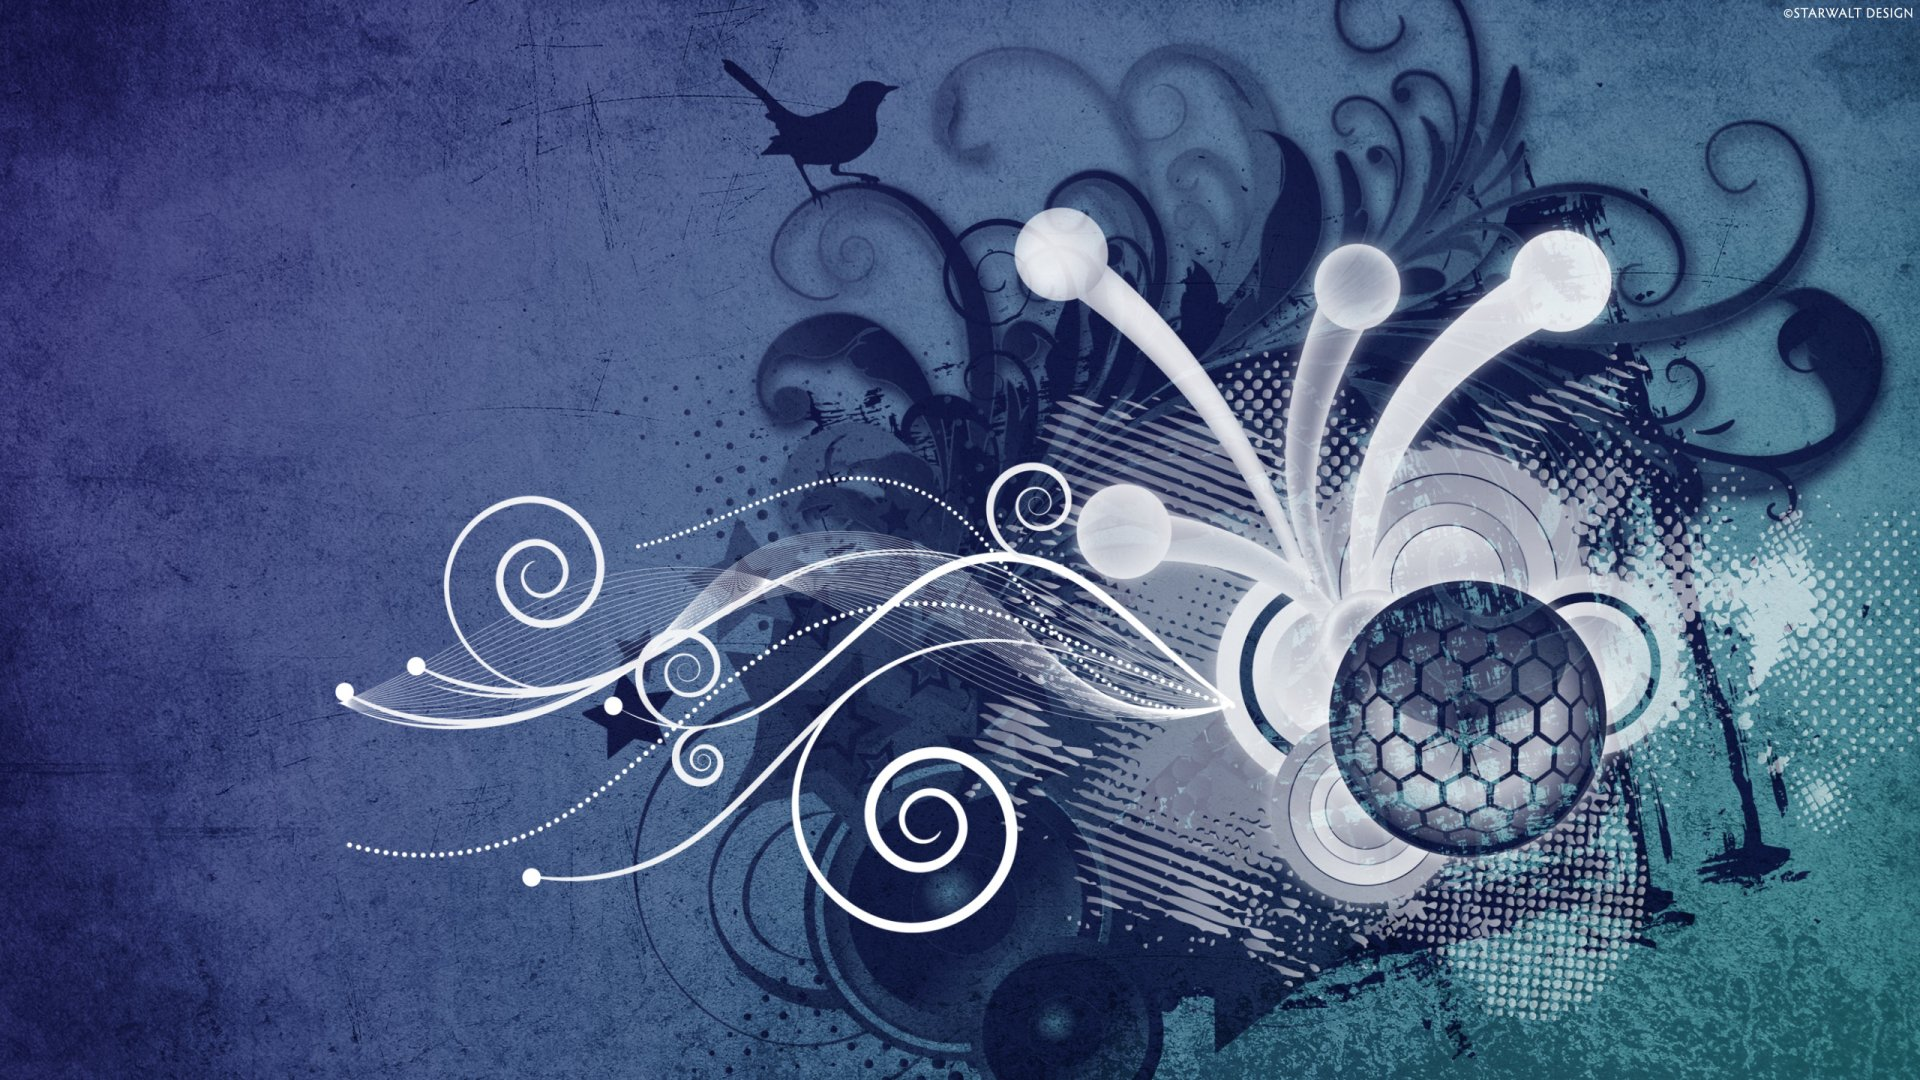 Wallpapers ID:146258